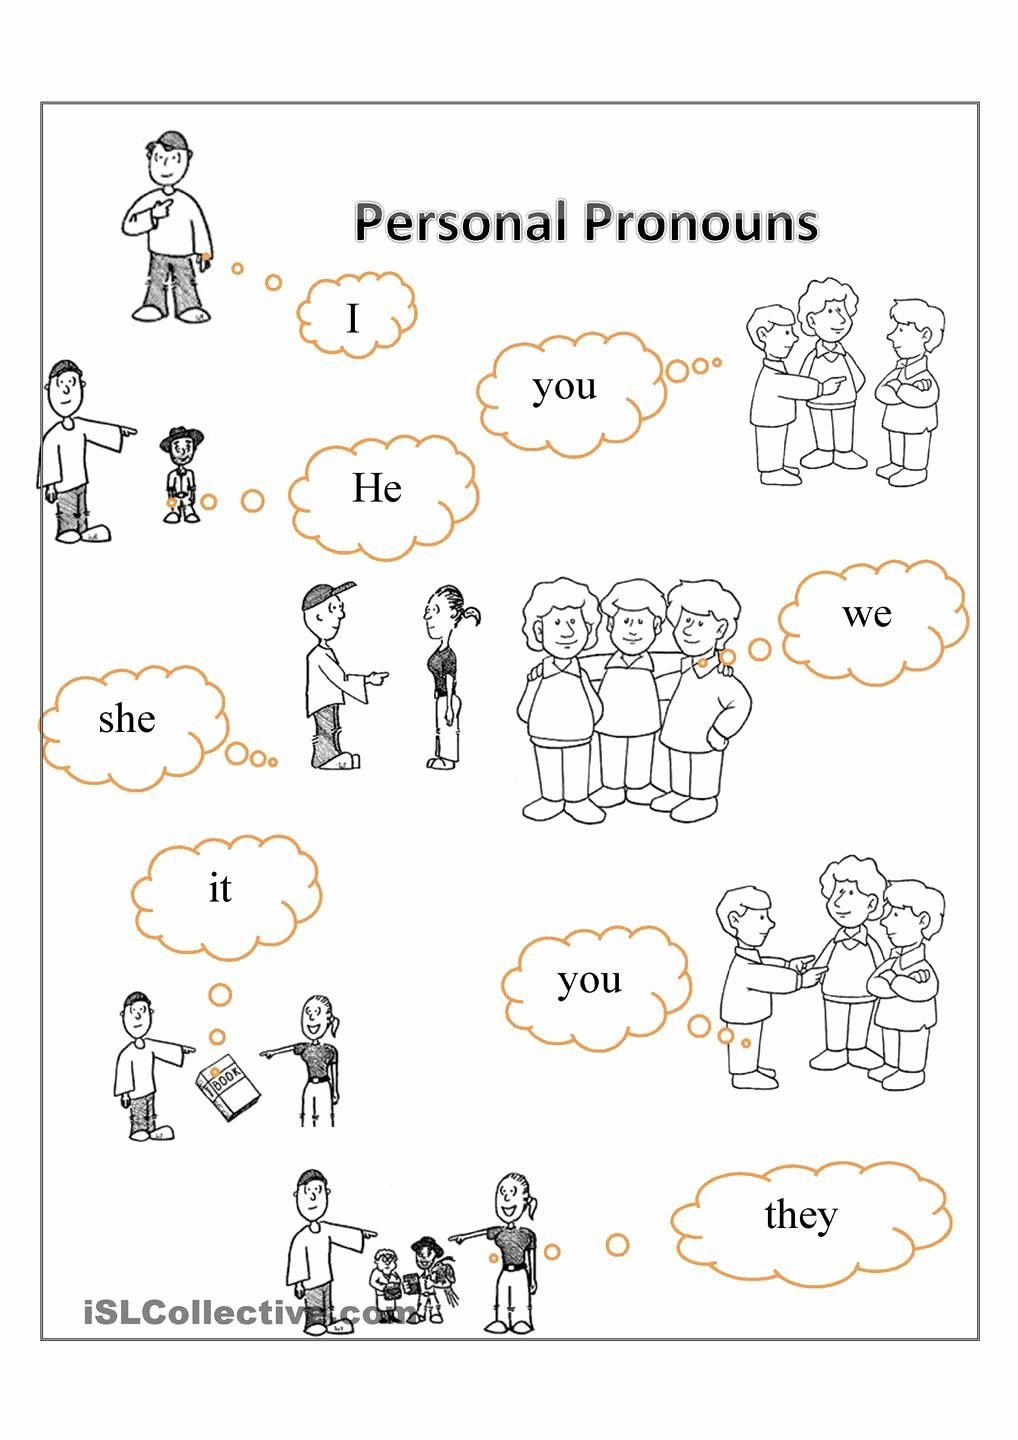 Personal Pronouns Worksheets for Preschoolers Printable Year 3